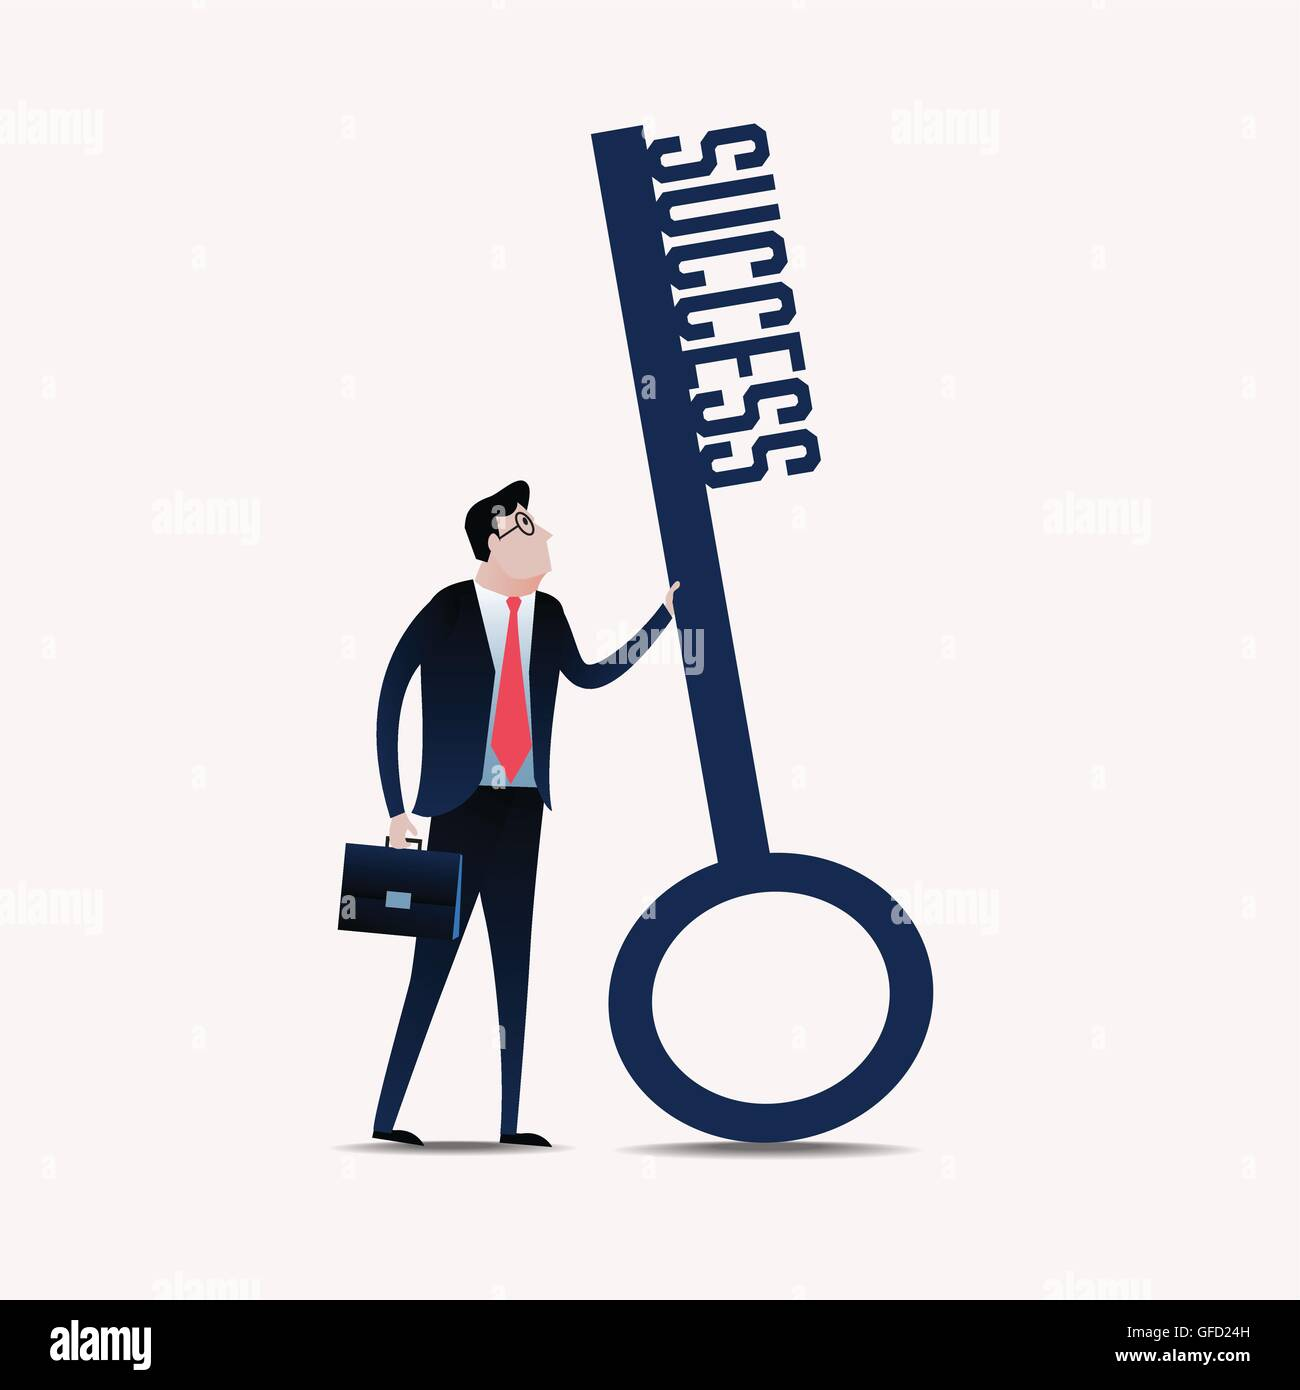 Businessman with a key success. business concept illustration vector - Stock Image